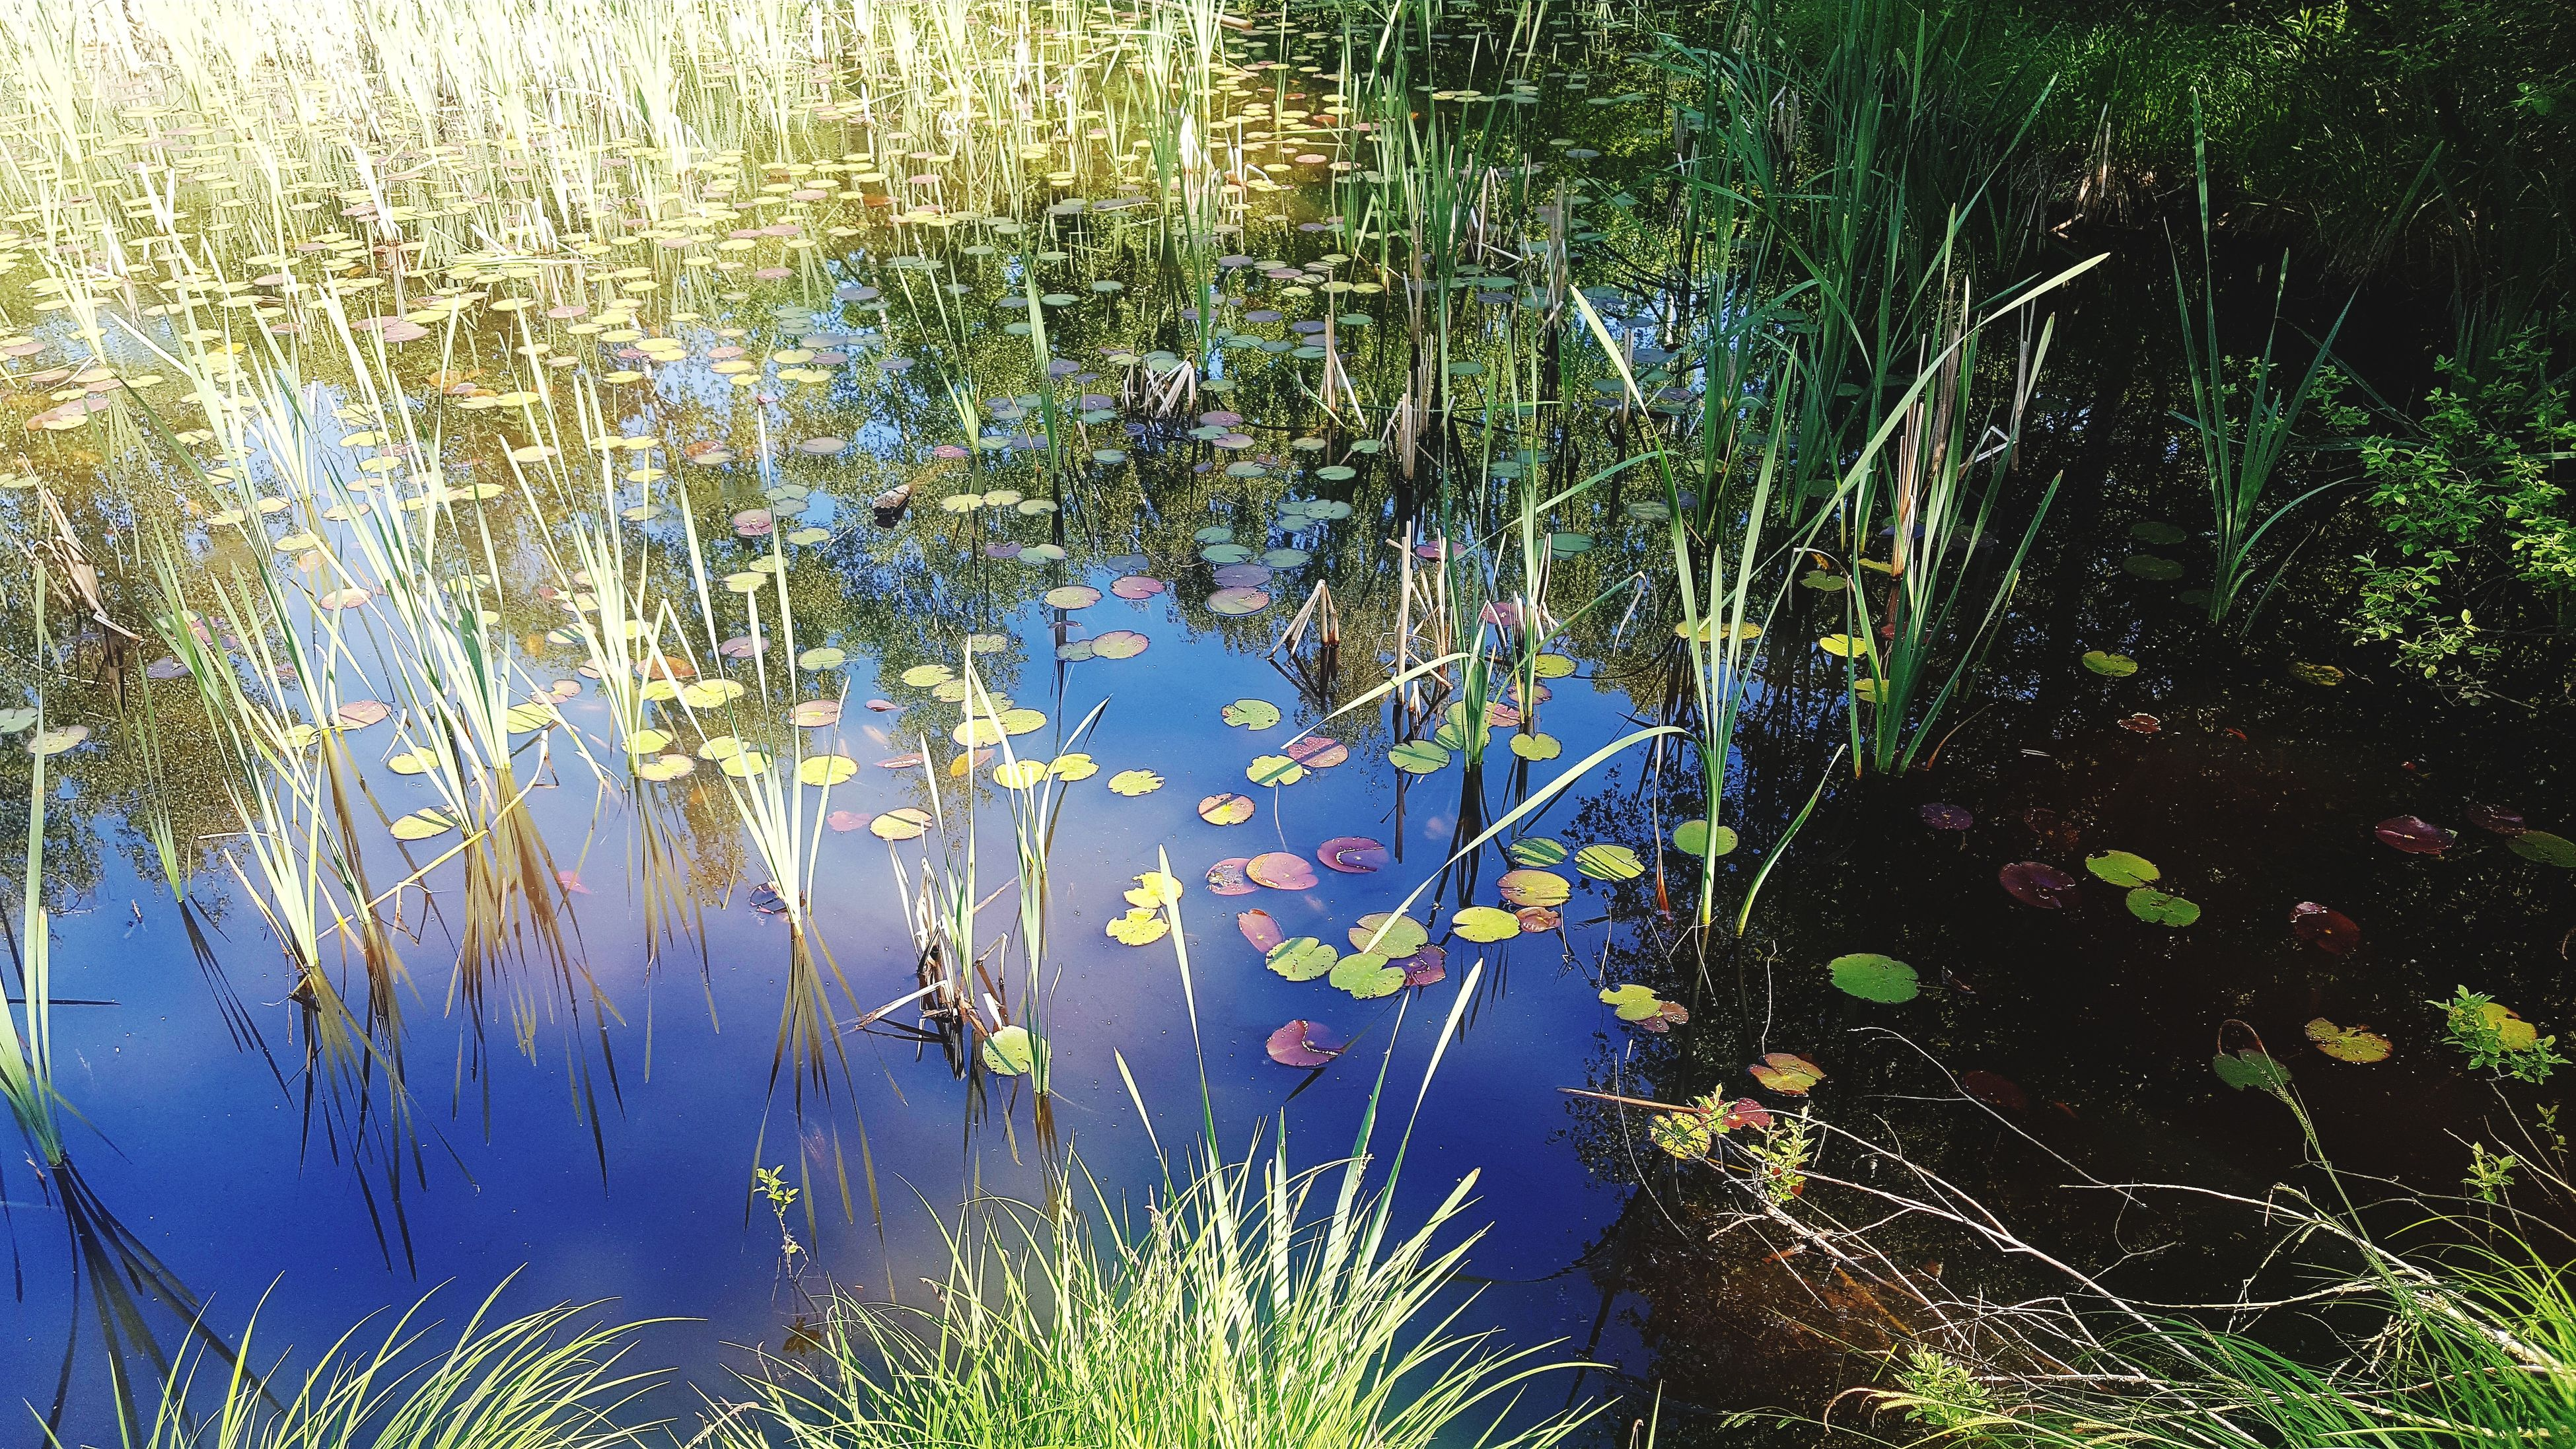 plant, nature, growth, water, leaf, beauty in nature, day, no people, lake, outdoors, tranquility, reflection, floating on water, water plant, water lily, lily pad, grass, flower, animal themes, freshness